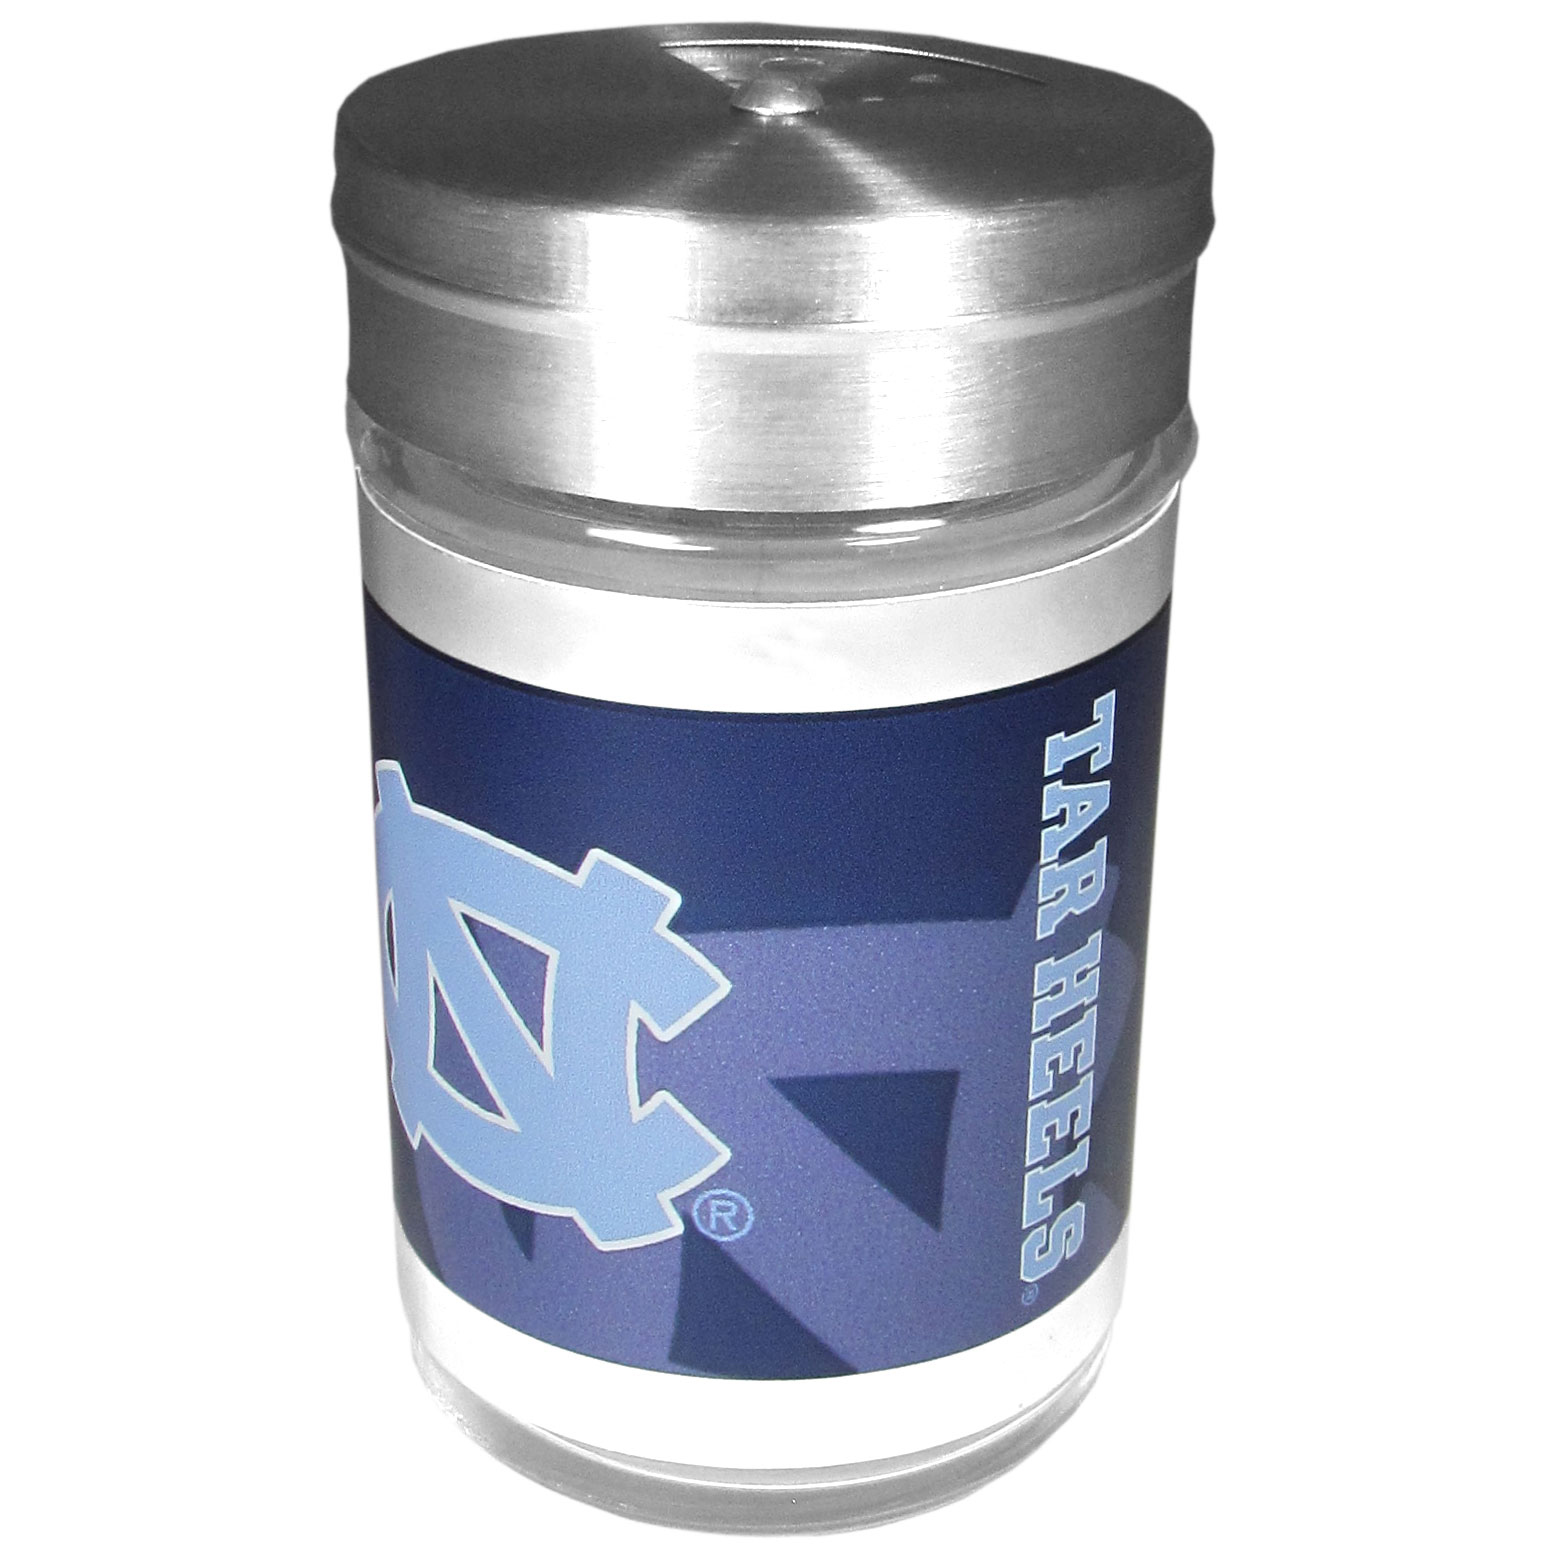 N. Carolina Tar Heels Tailgater Season Shakers - Spice it up with our N. Carolina Tar Heels tailgater season shakers! This compact shaker is 2 inch tall with a twist top that closes off the holes at the top making it perfect for travel preventing those messy spills. The shaker has wide holes perfect for keeping your pepper seeds or cheese toppings. The bright team graphics will make you the envy of the other fans while you are grilling up your tailgating goodies.